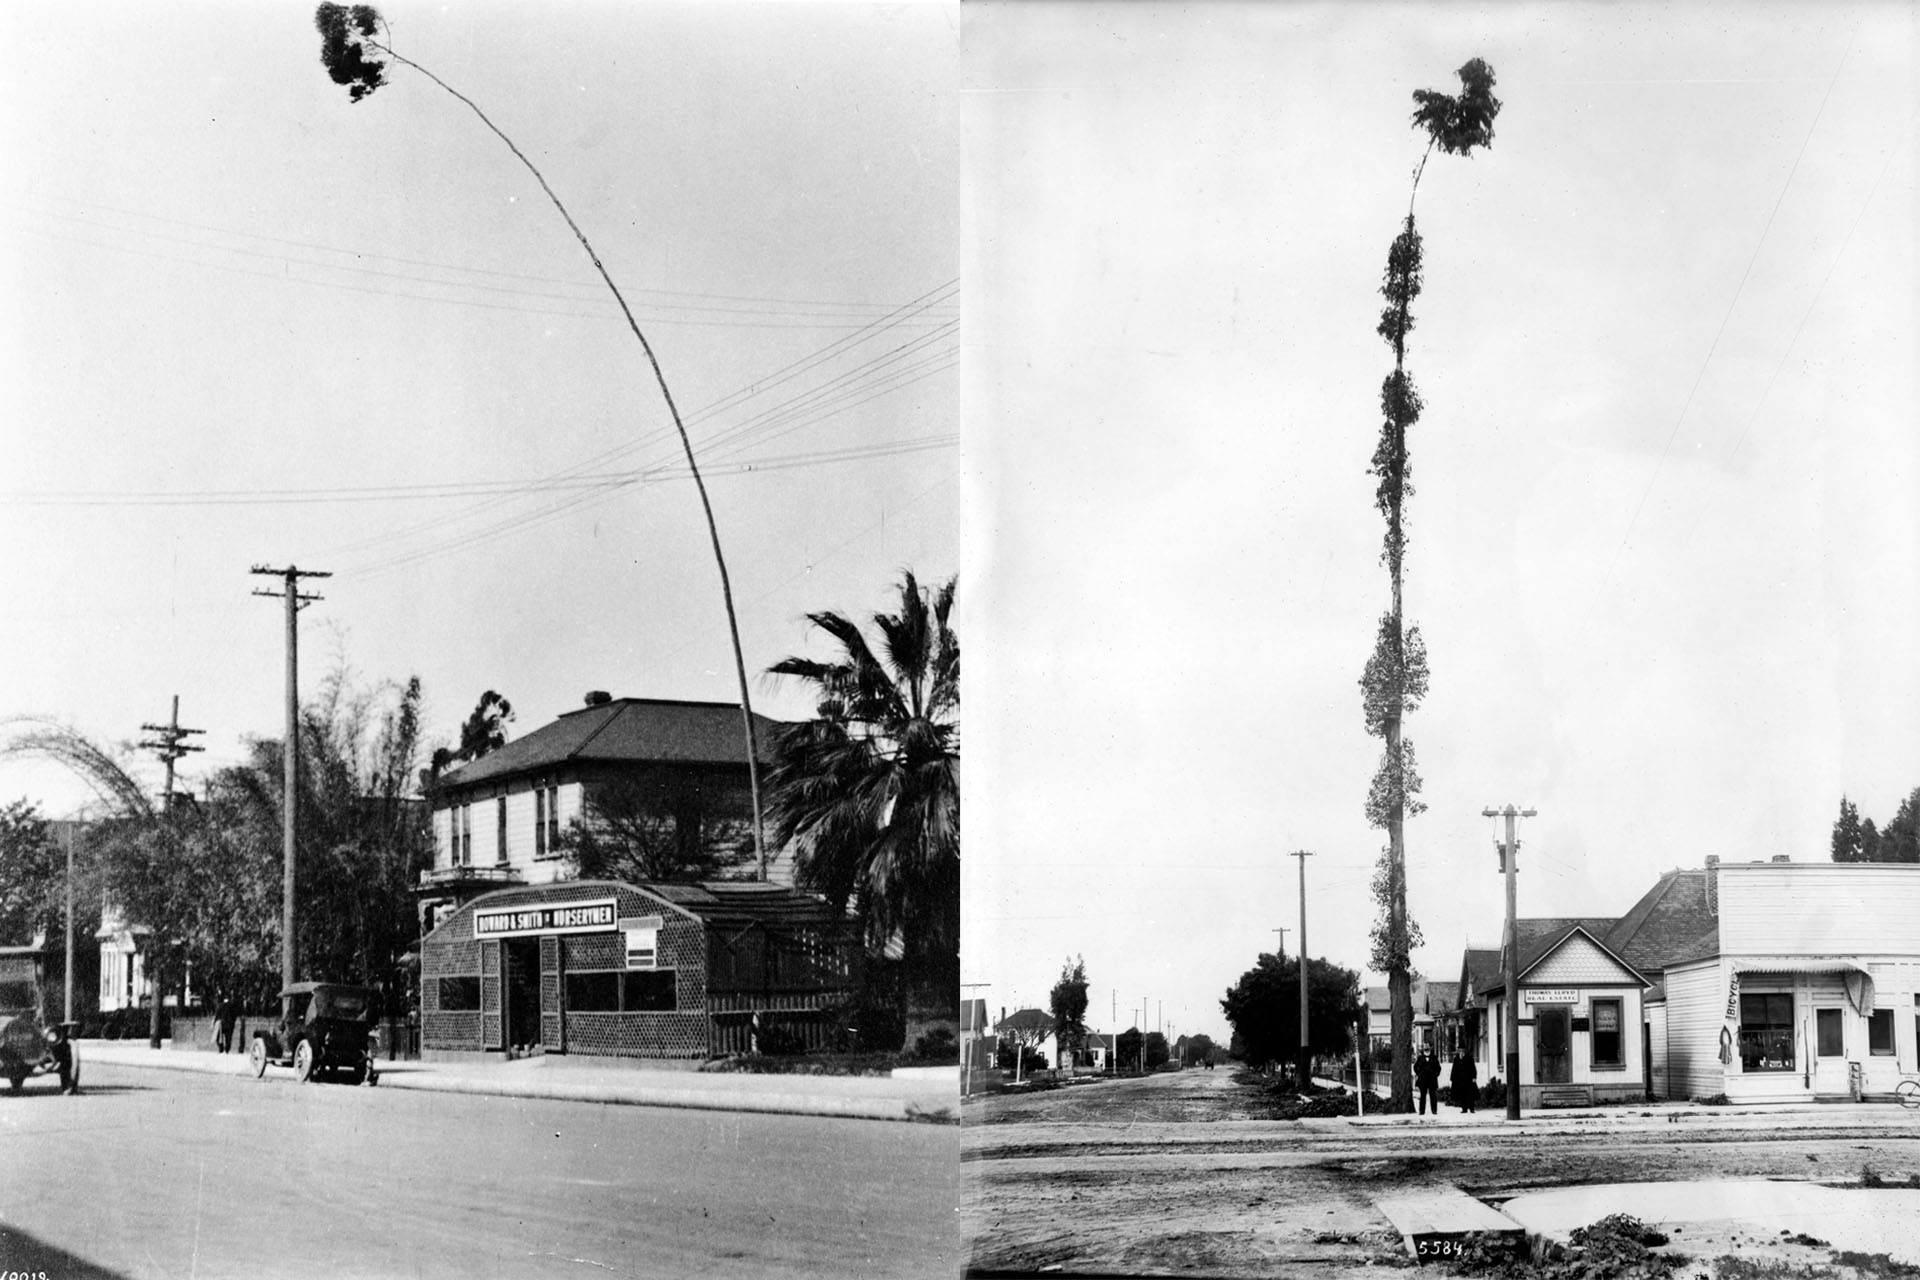 This eucalyptus tree at Olive and 9th measured 134 feet before a windstorm toppled it in 1915. Courtesy of the Title Insurance and Trust / C.C. Pierce Photography Collection, USC Libraries.